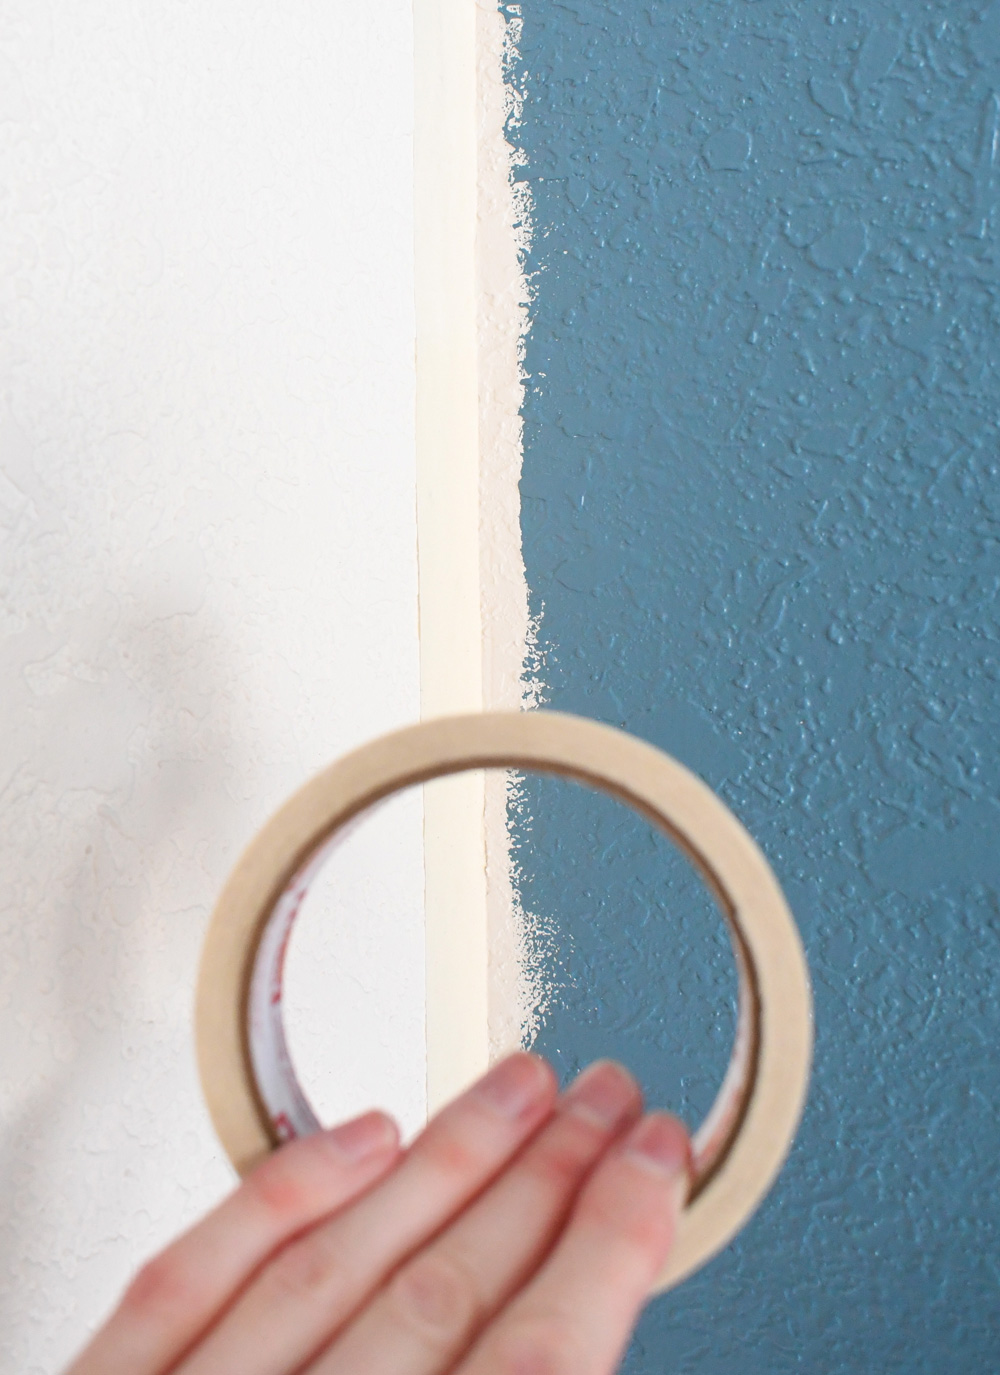 How to paint an accent wall - use a consistent painting technique